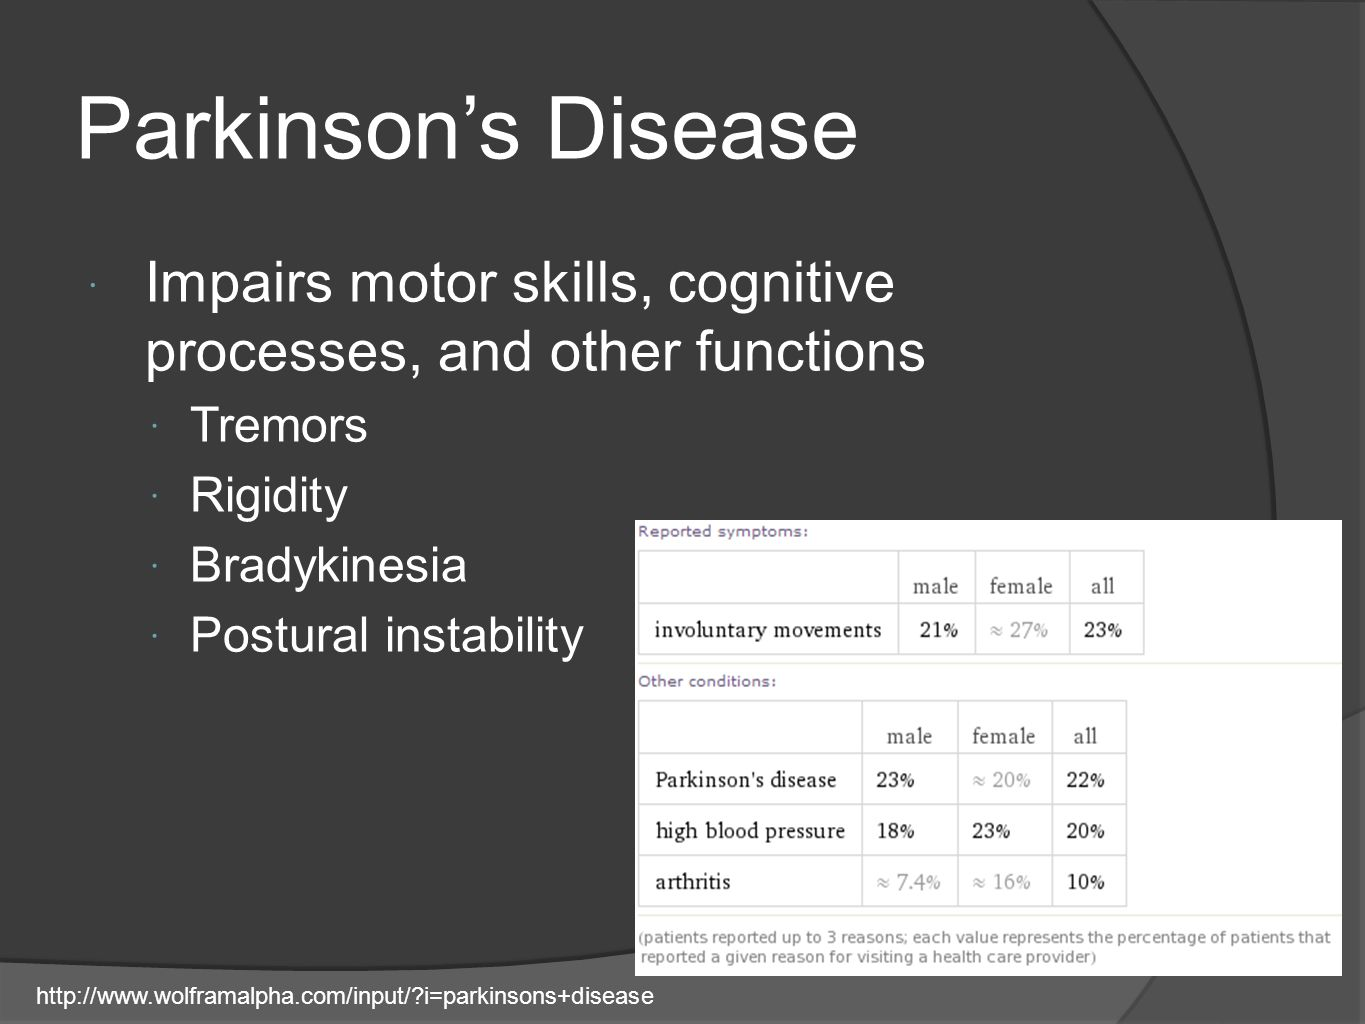 Parkinsons Disease Impairs motor skills, cognitive processes, and other functions Tremors Rigidity Bradykinesia Postural instability http://www.wolfra